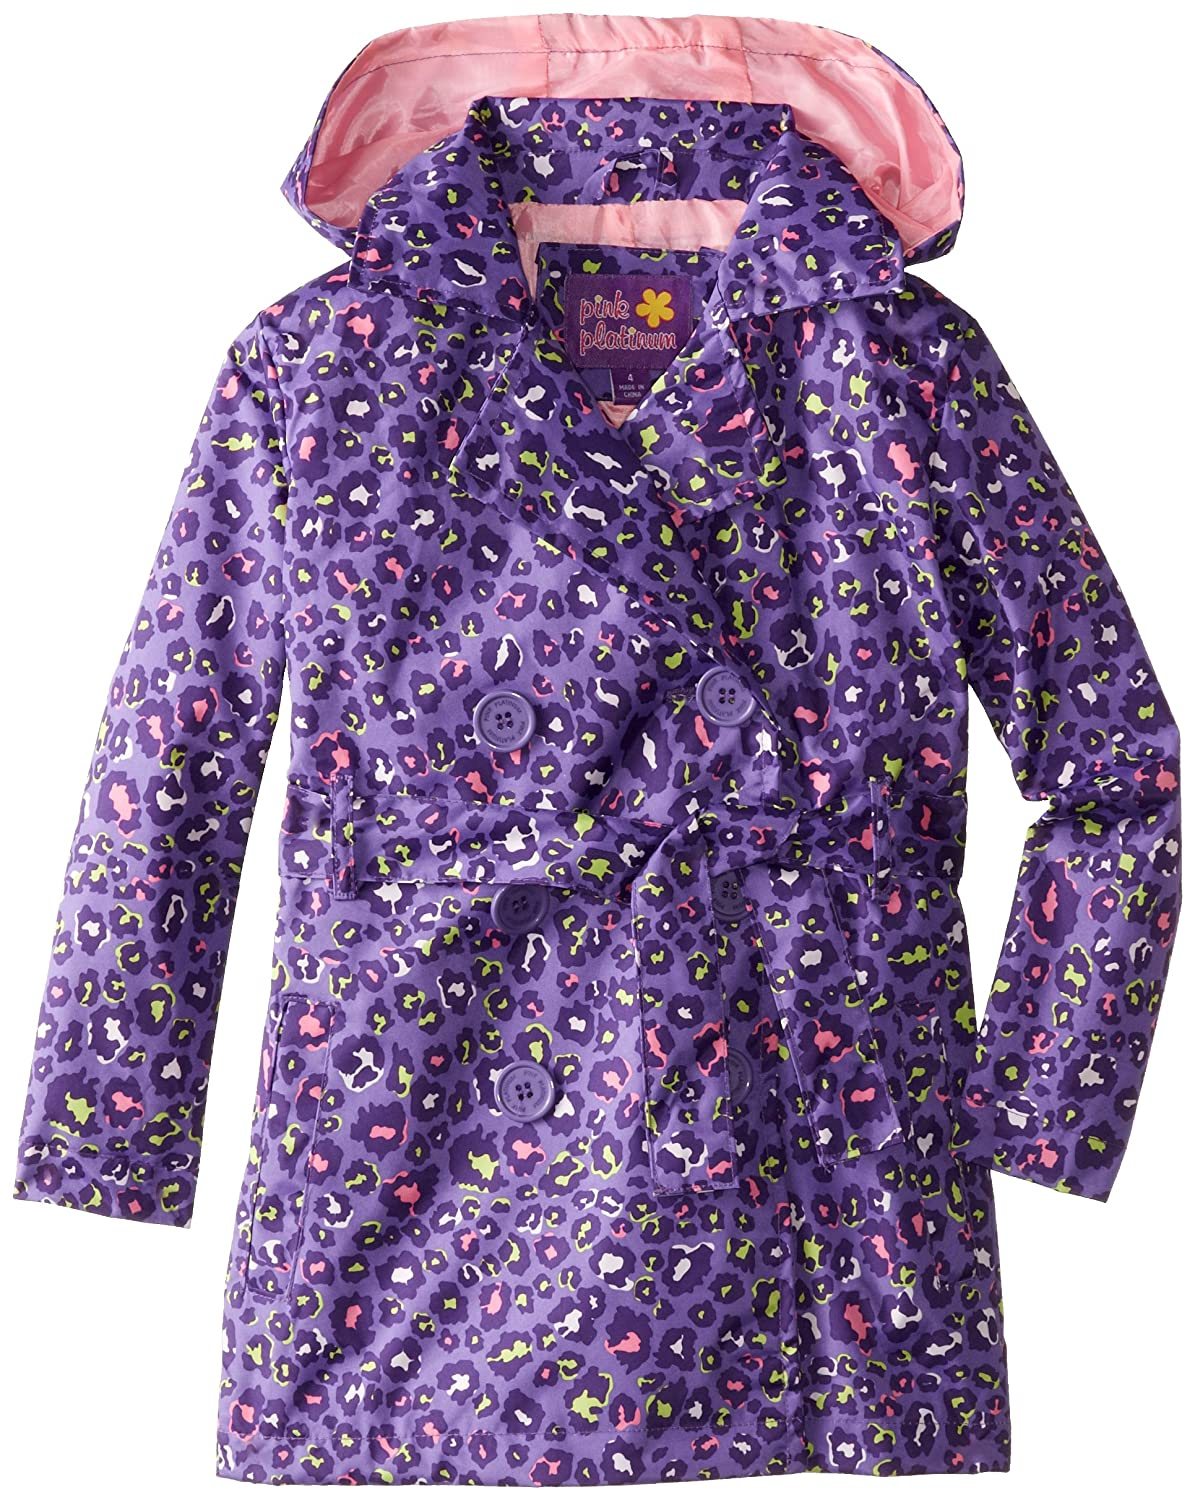 Pink Platinum Girls' Multicolor Animal Trench Jacket Pink Platinum Girls 2-6x PP82006